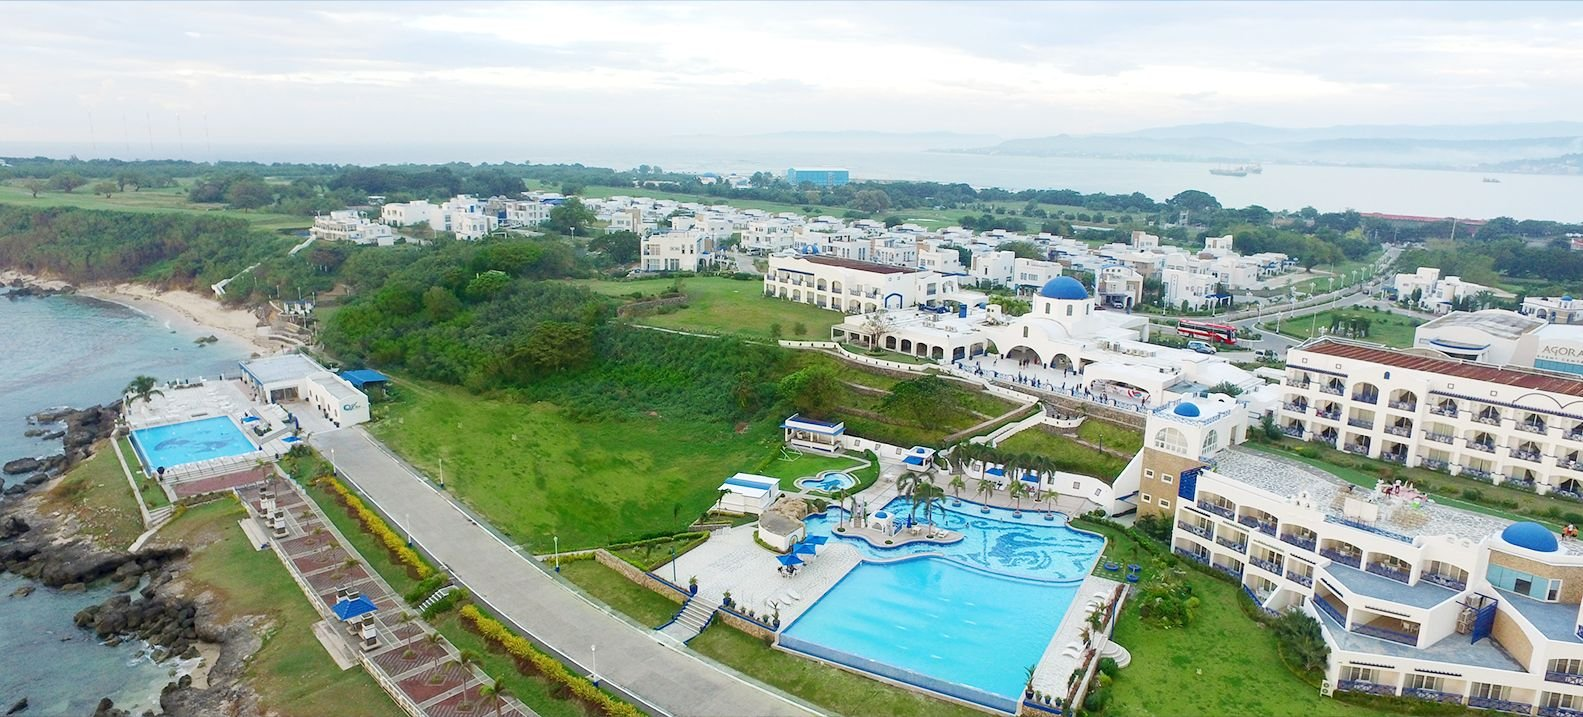 Thunderbird Resorts & Casinos – Poro Point resort view